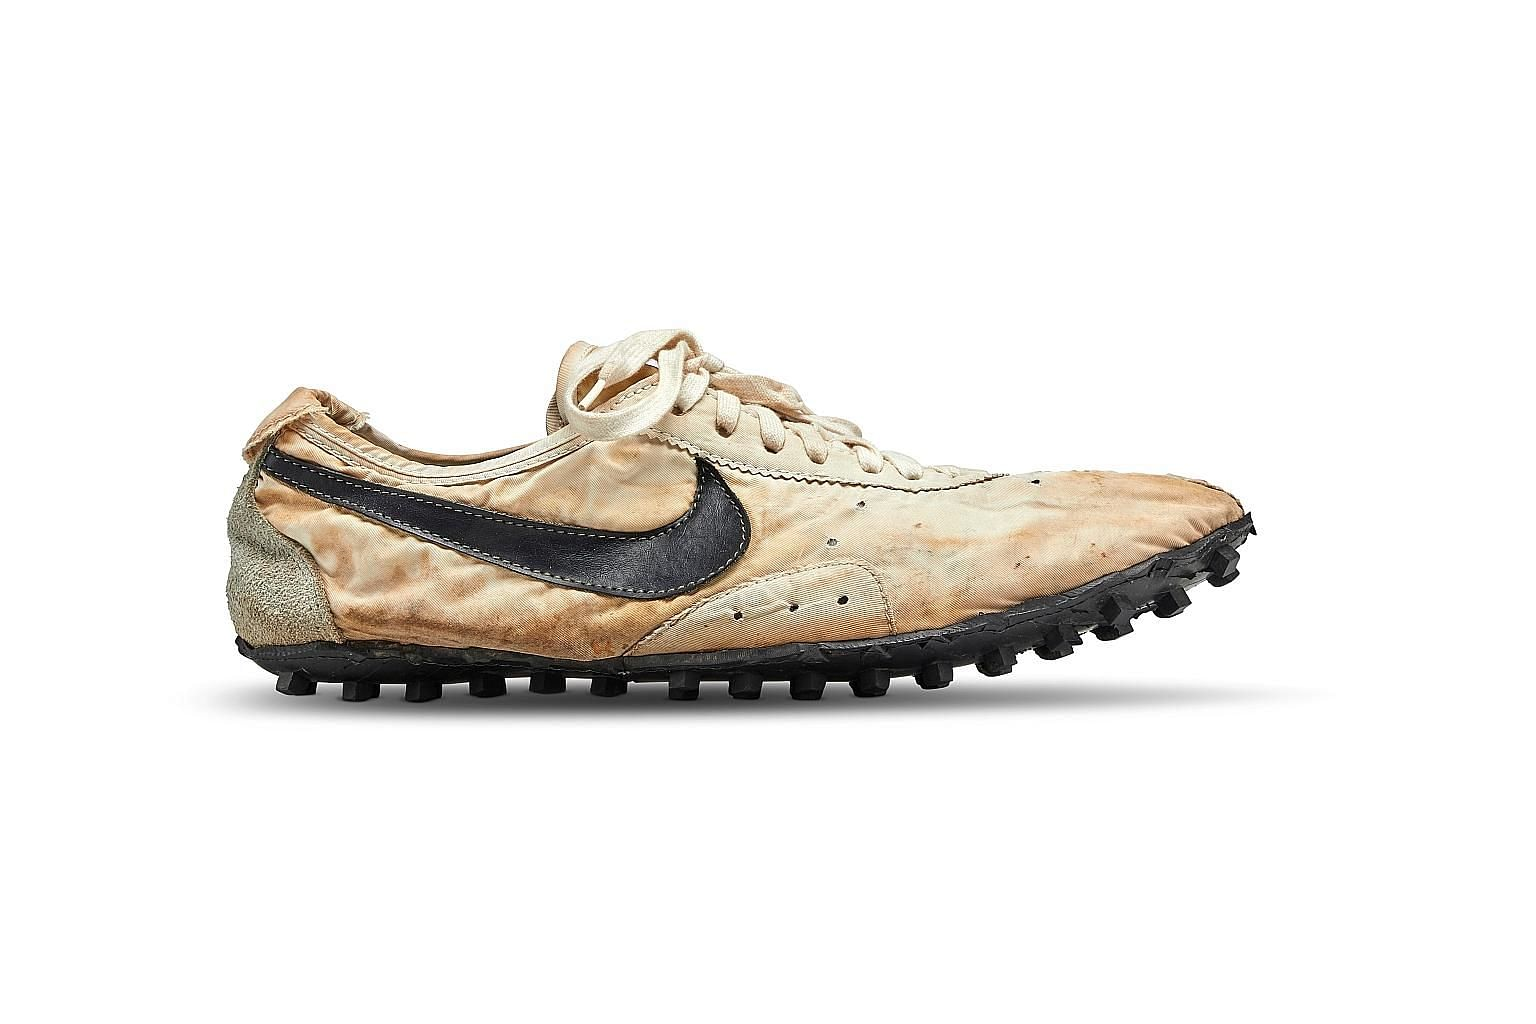 Canadian collector Miles Nadal landed the Nike Moon Shoe, one of only about 12 pairs manufactured in the world, at auction and plans to display it at his private museum. PHOTO: REUTERS